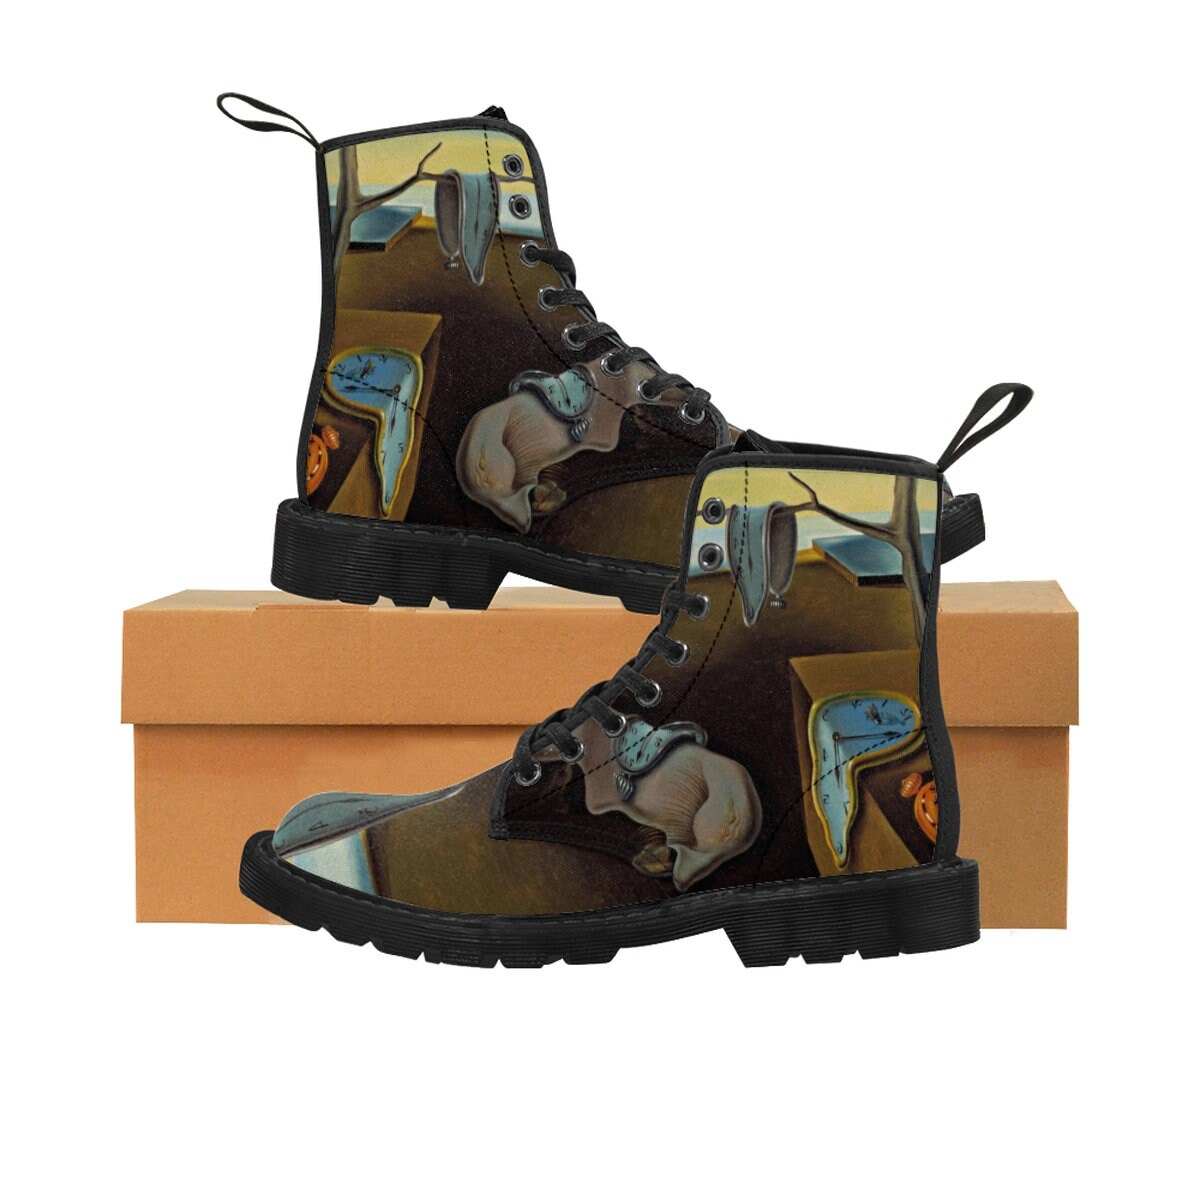 c8c076368 Salvador Dali The Persistence Of Memory WomenS Martin Boots   Etsy